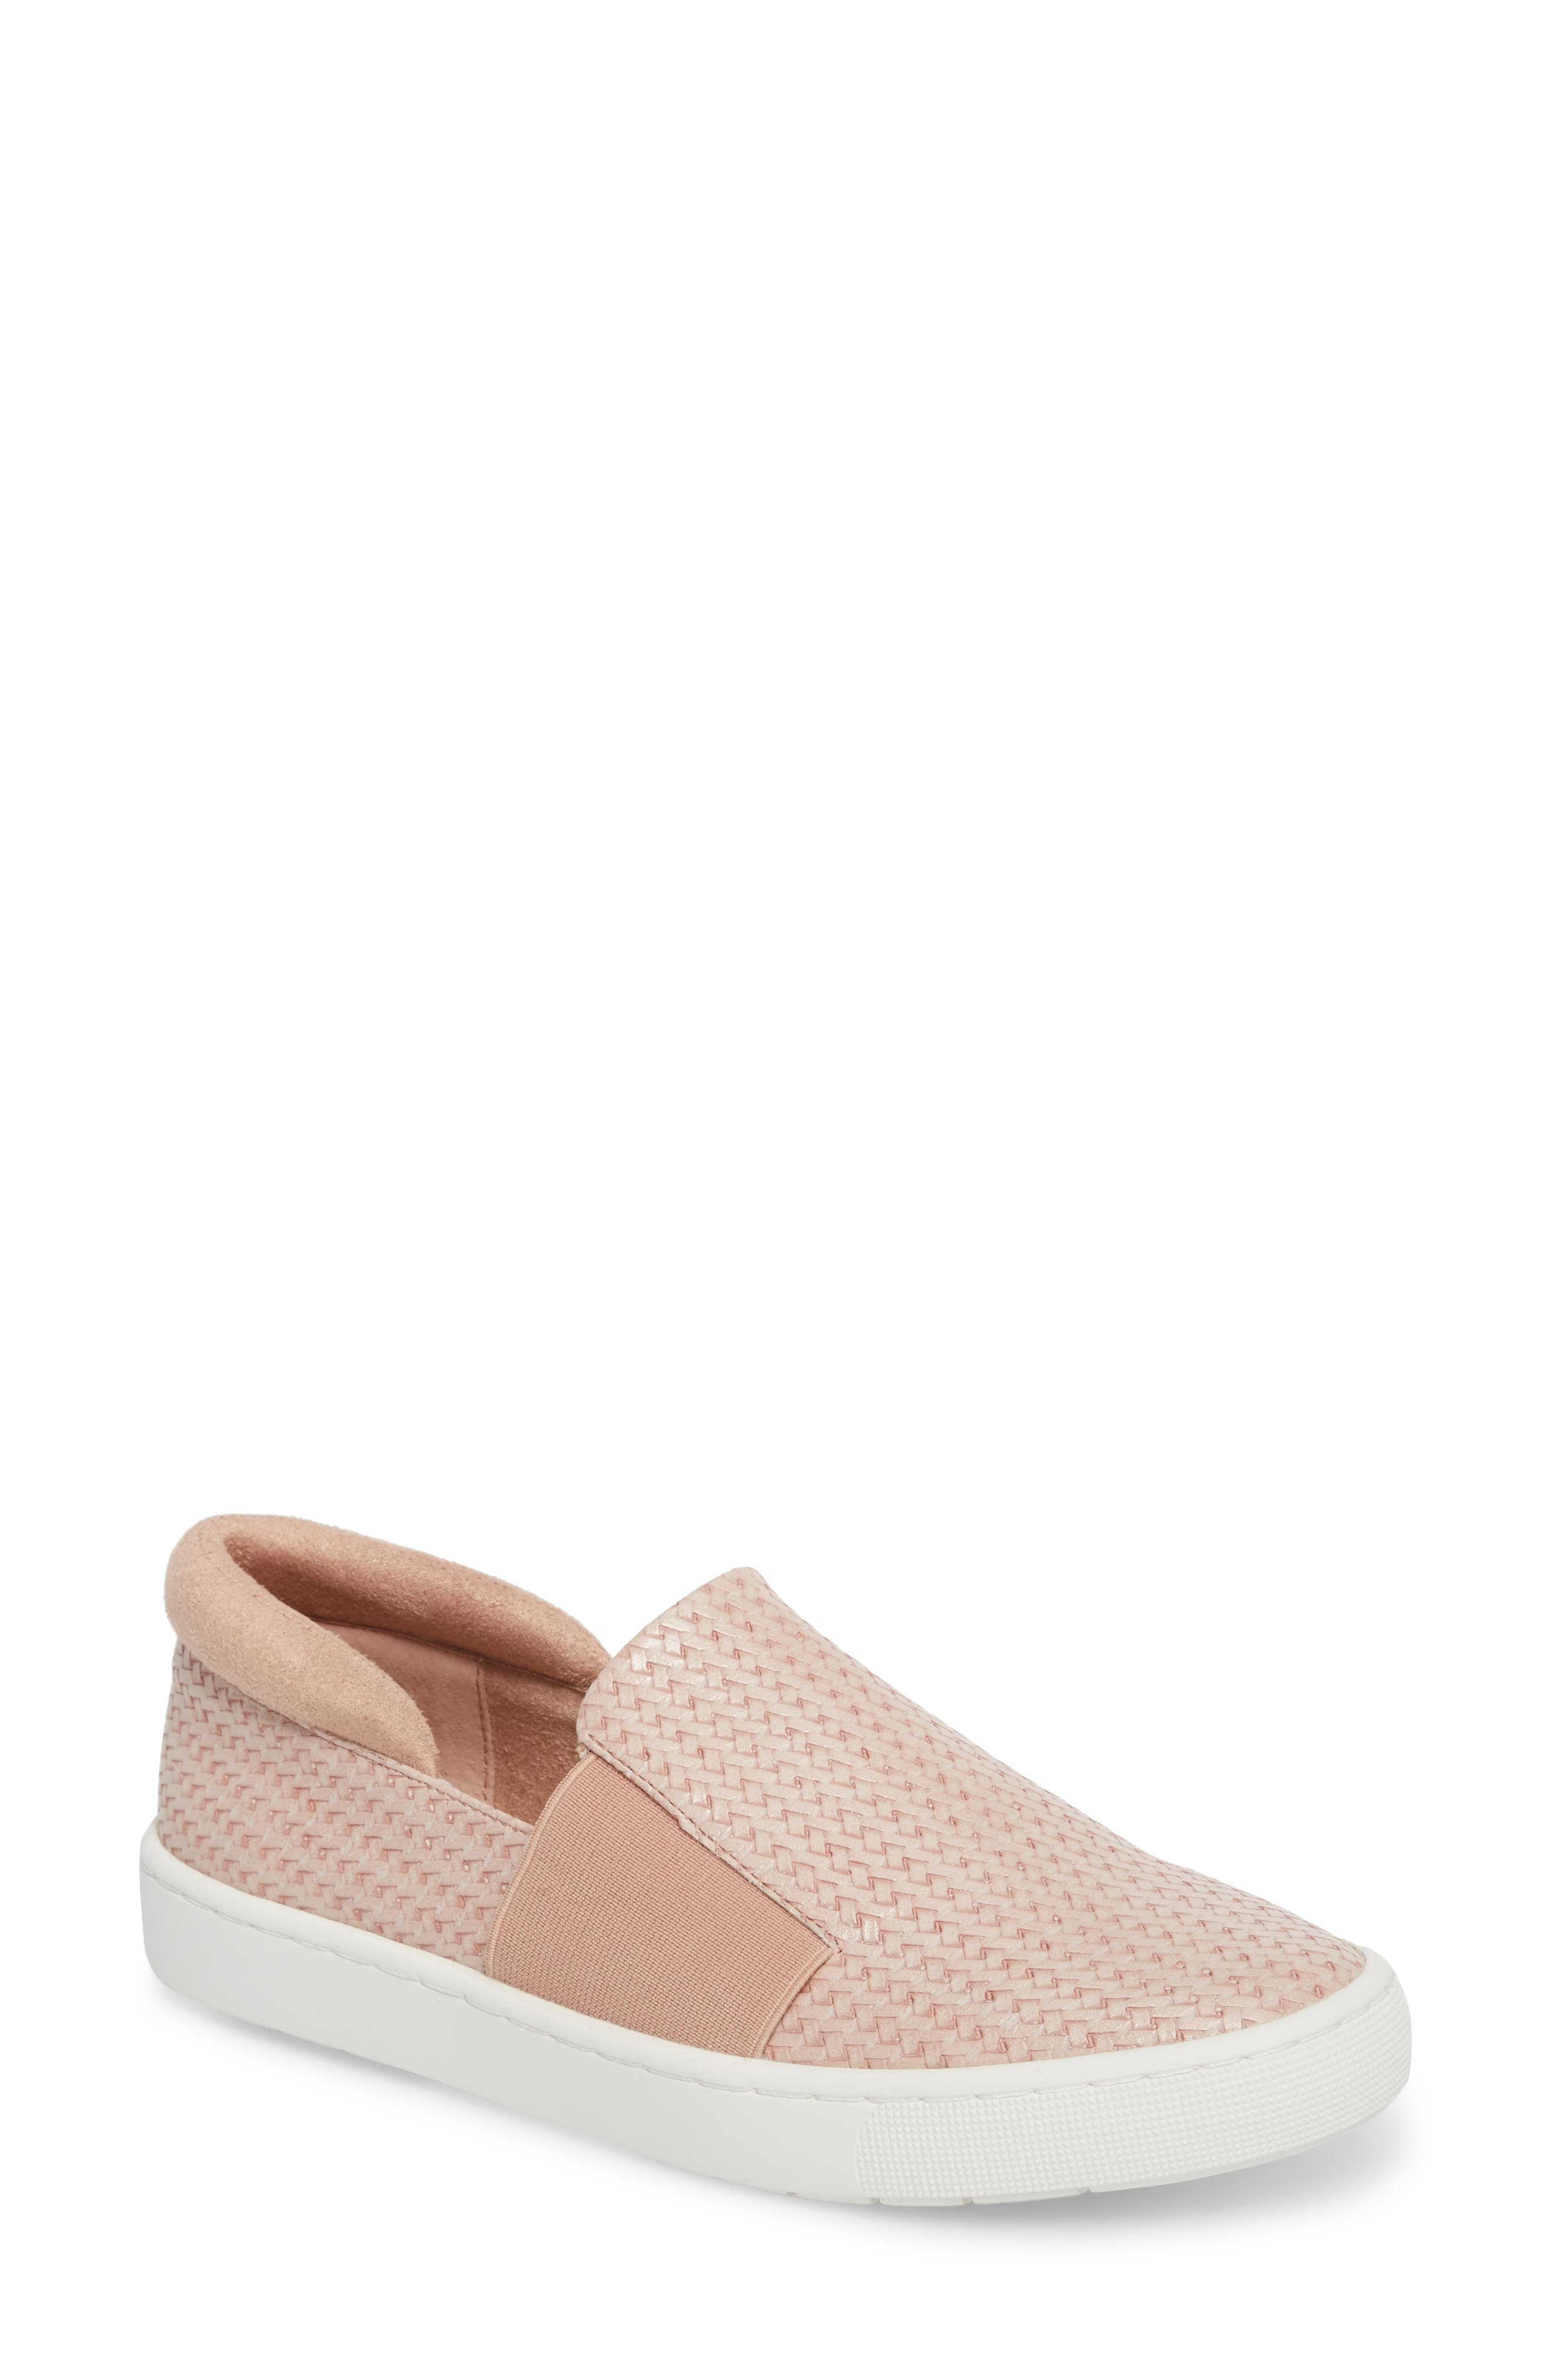 Ramp II Slip-On Sneaker,                         Main,                         color, BLUSH FABRIC